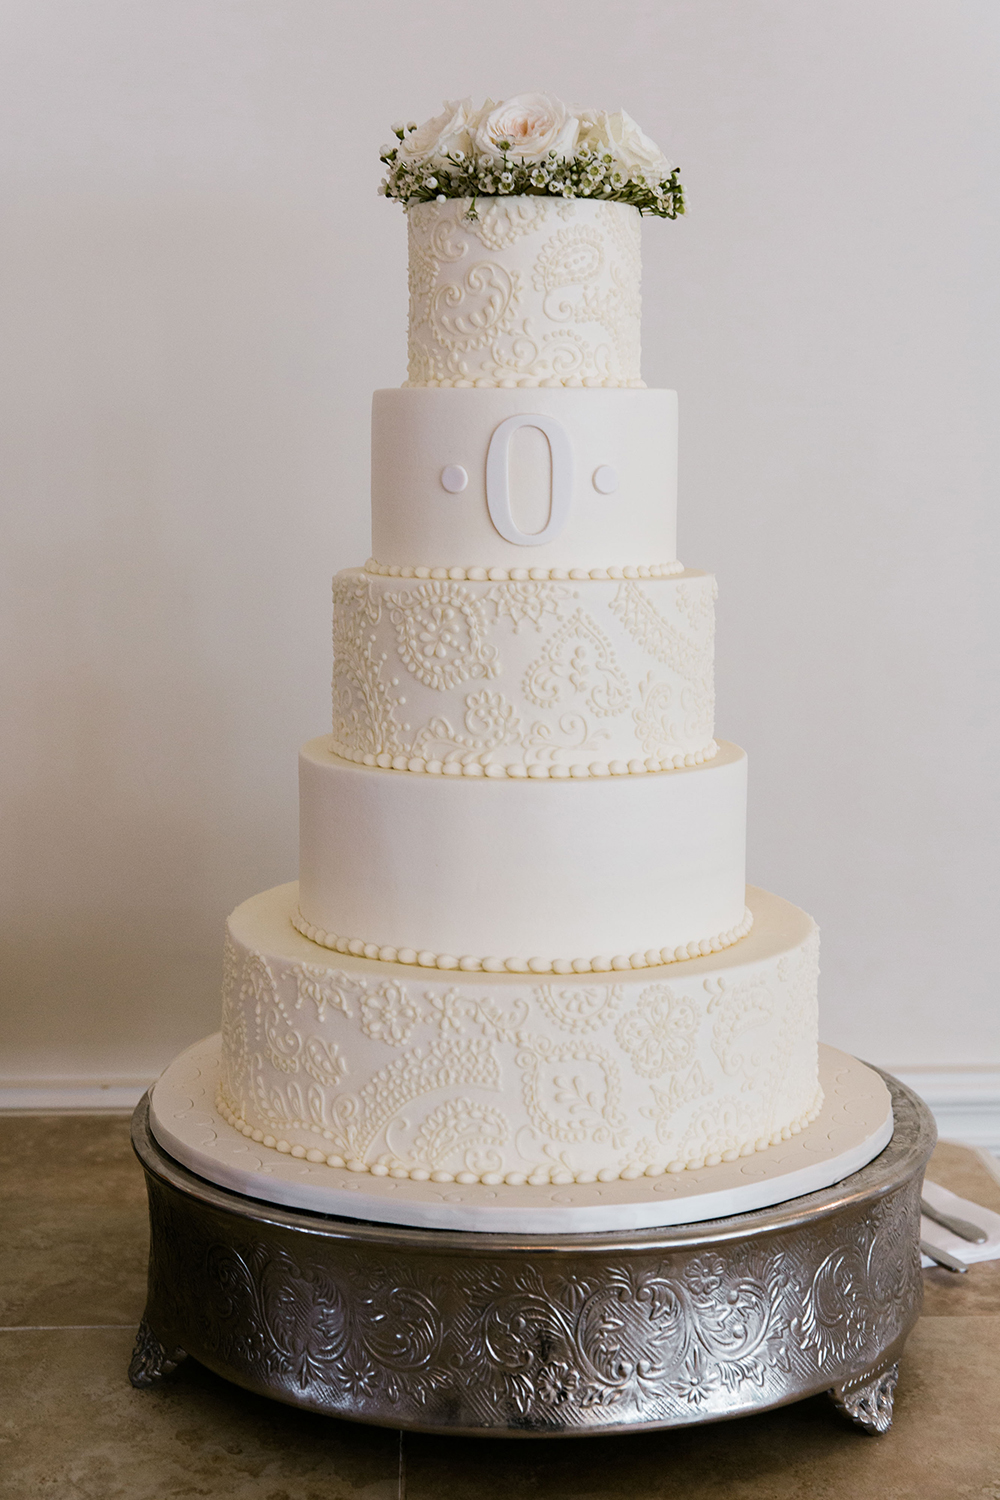 cakes by gina - wedding cake - classic